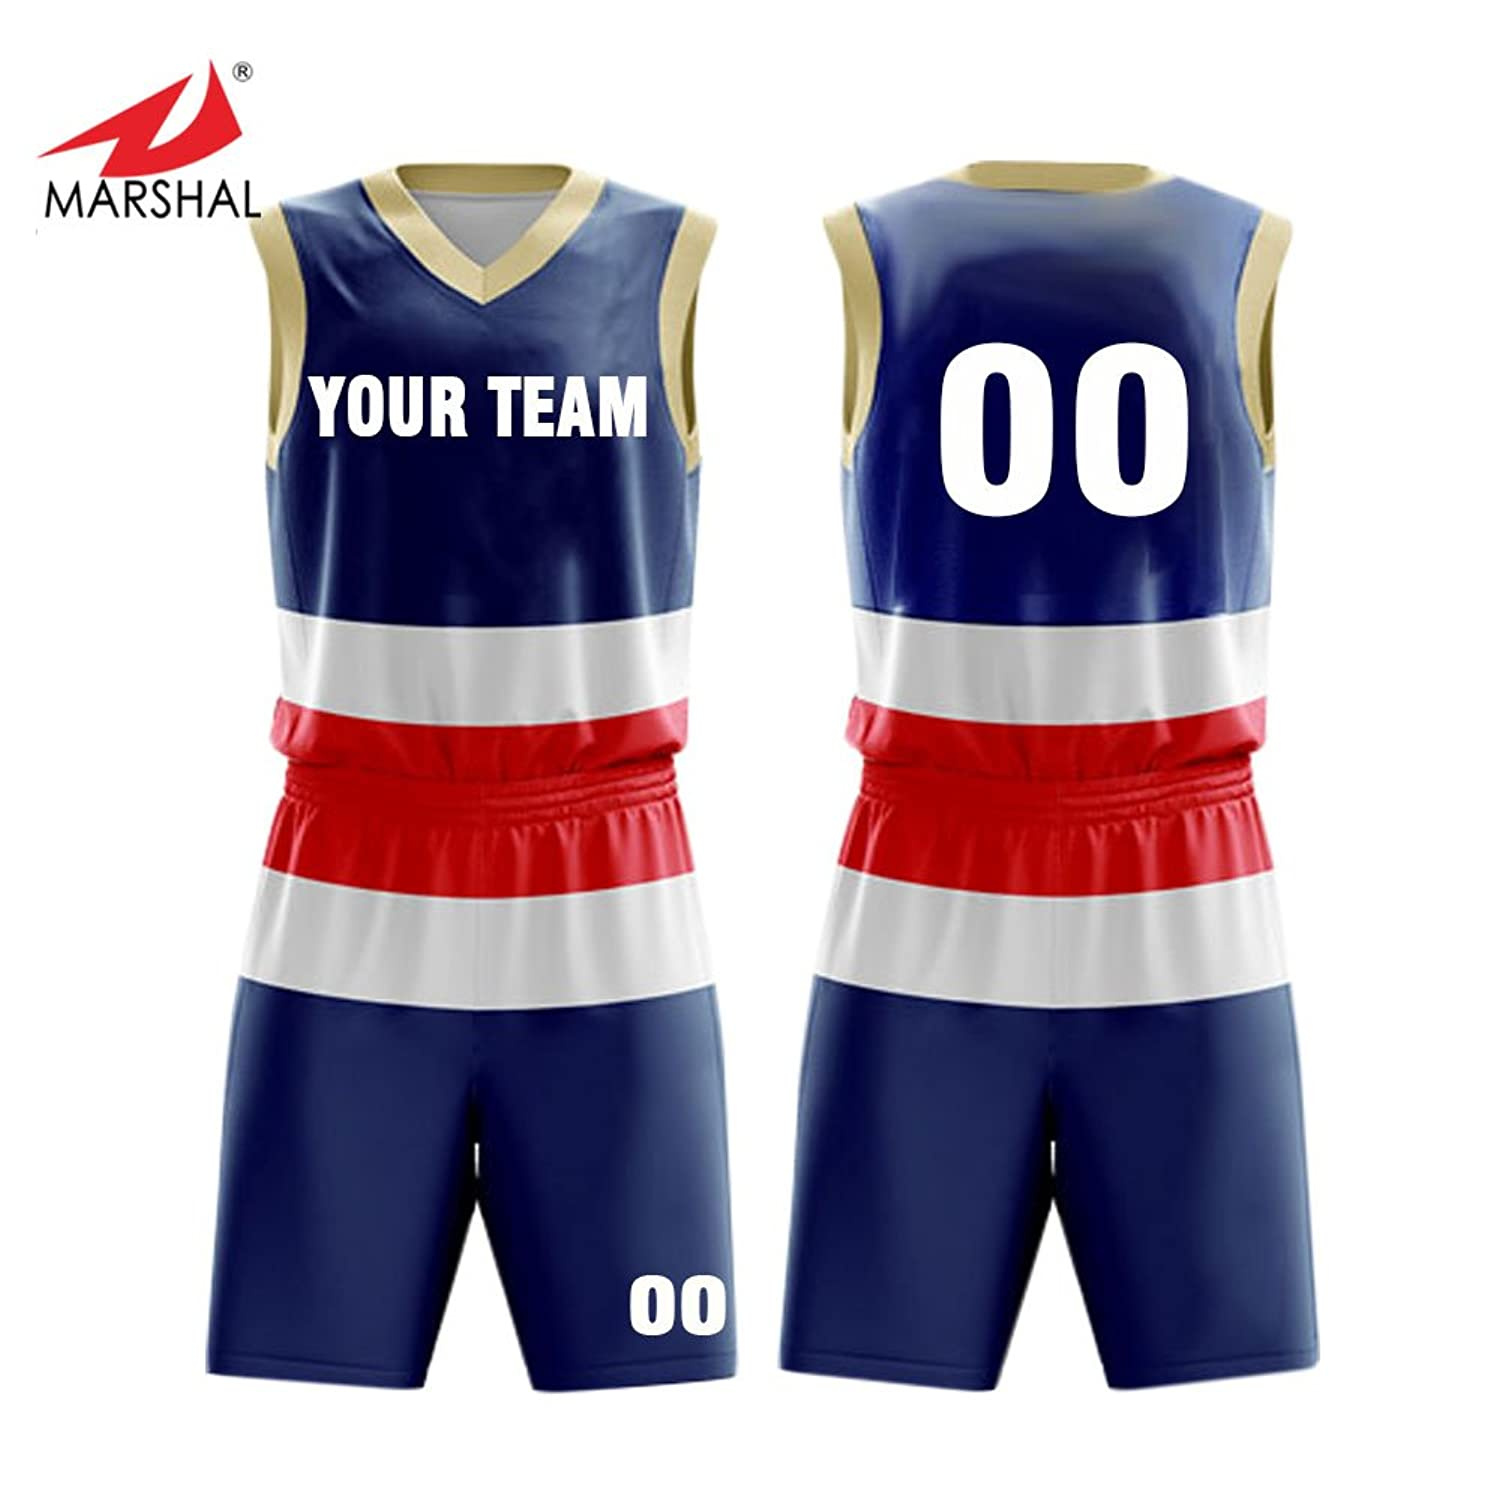 bf5e6bfb1 Amazon.com  Marshal Jersey 3 Colors Custom Basketball Jersey Set Full  Sublimation Sportswear Custom Men s Uniform Suit